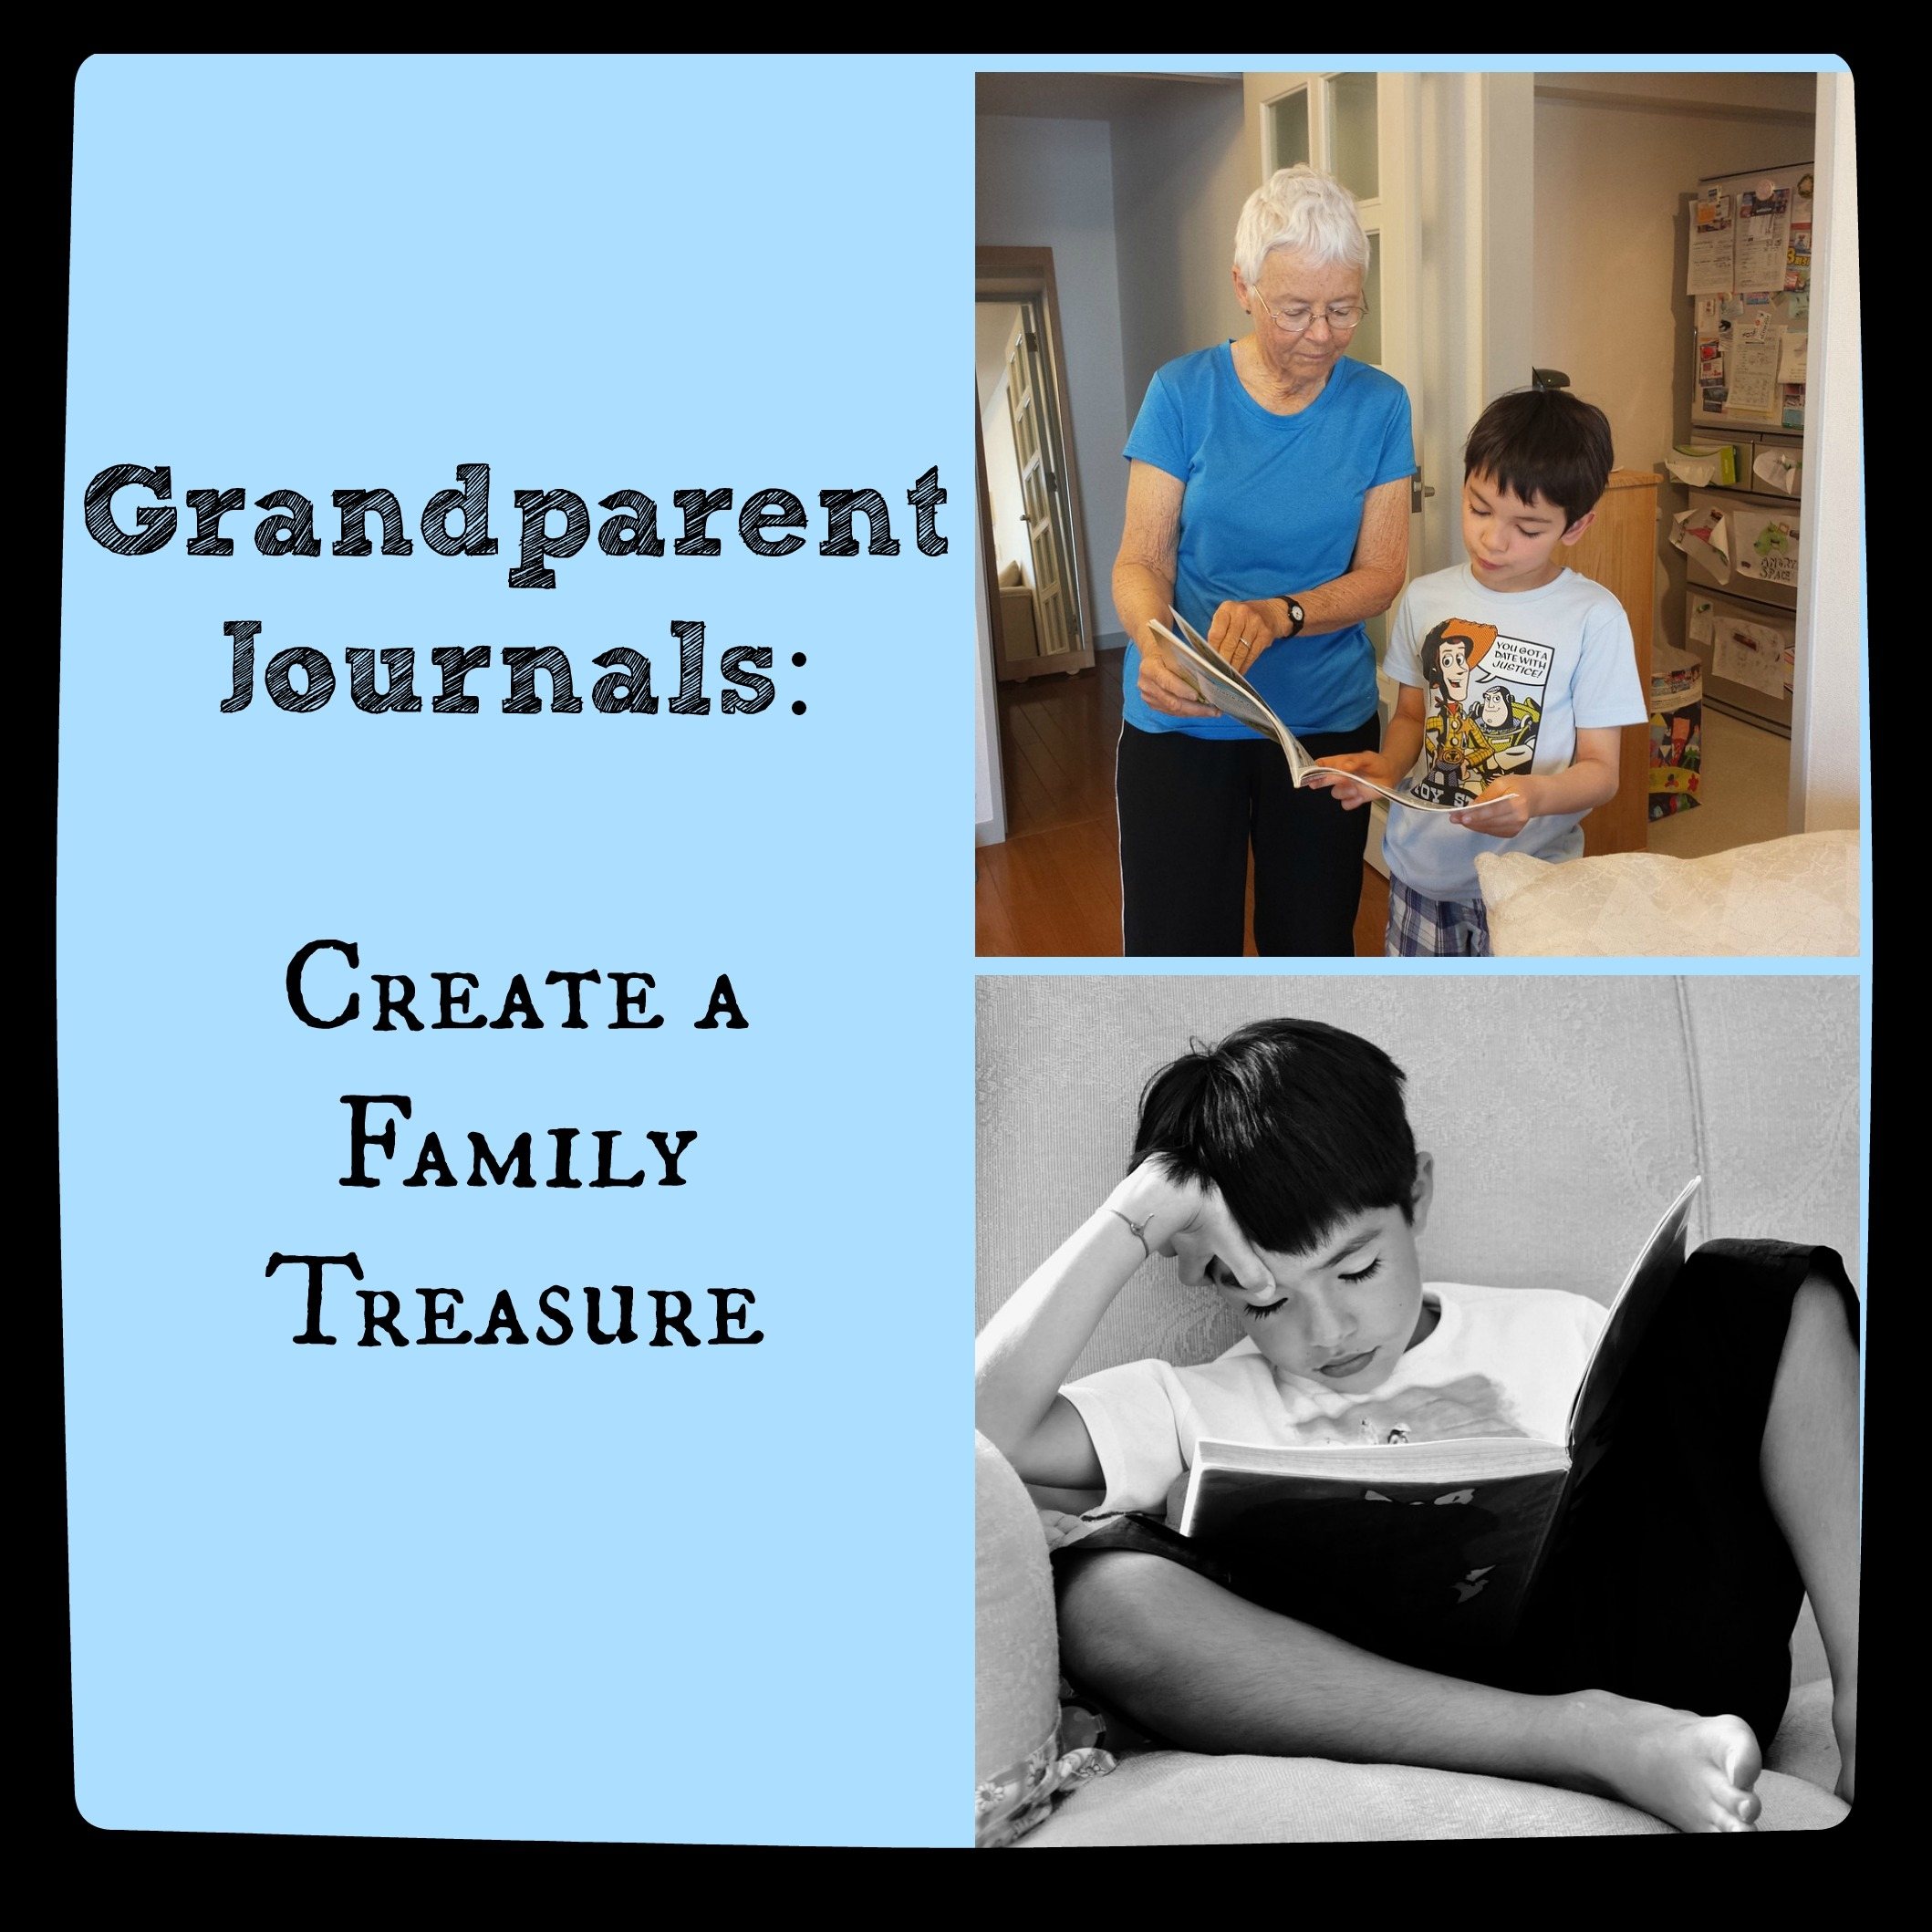 grandparent journals.jpg